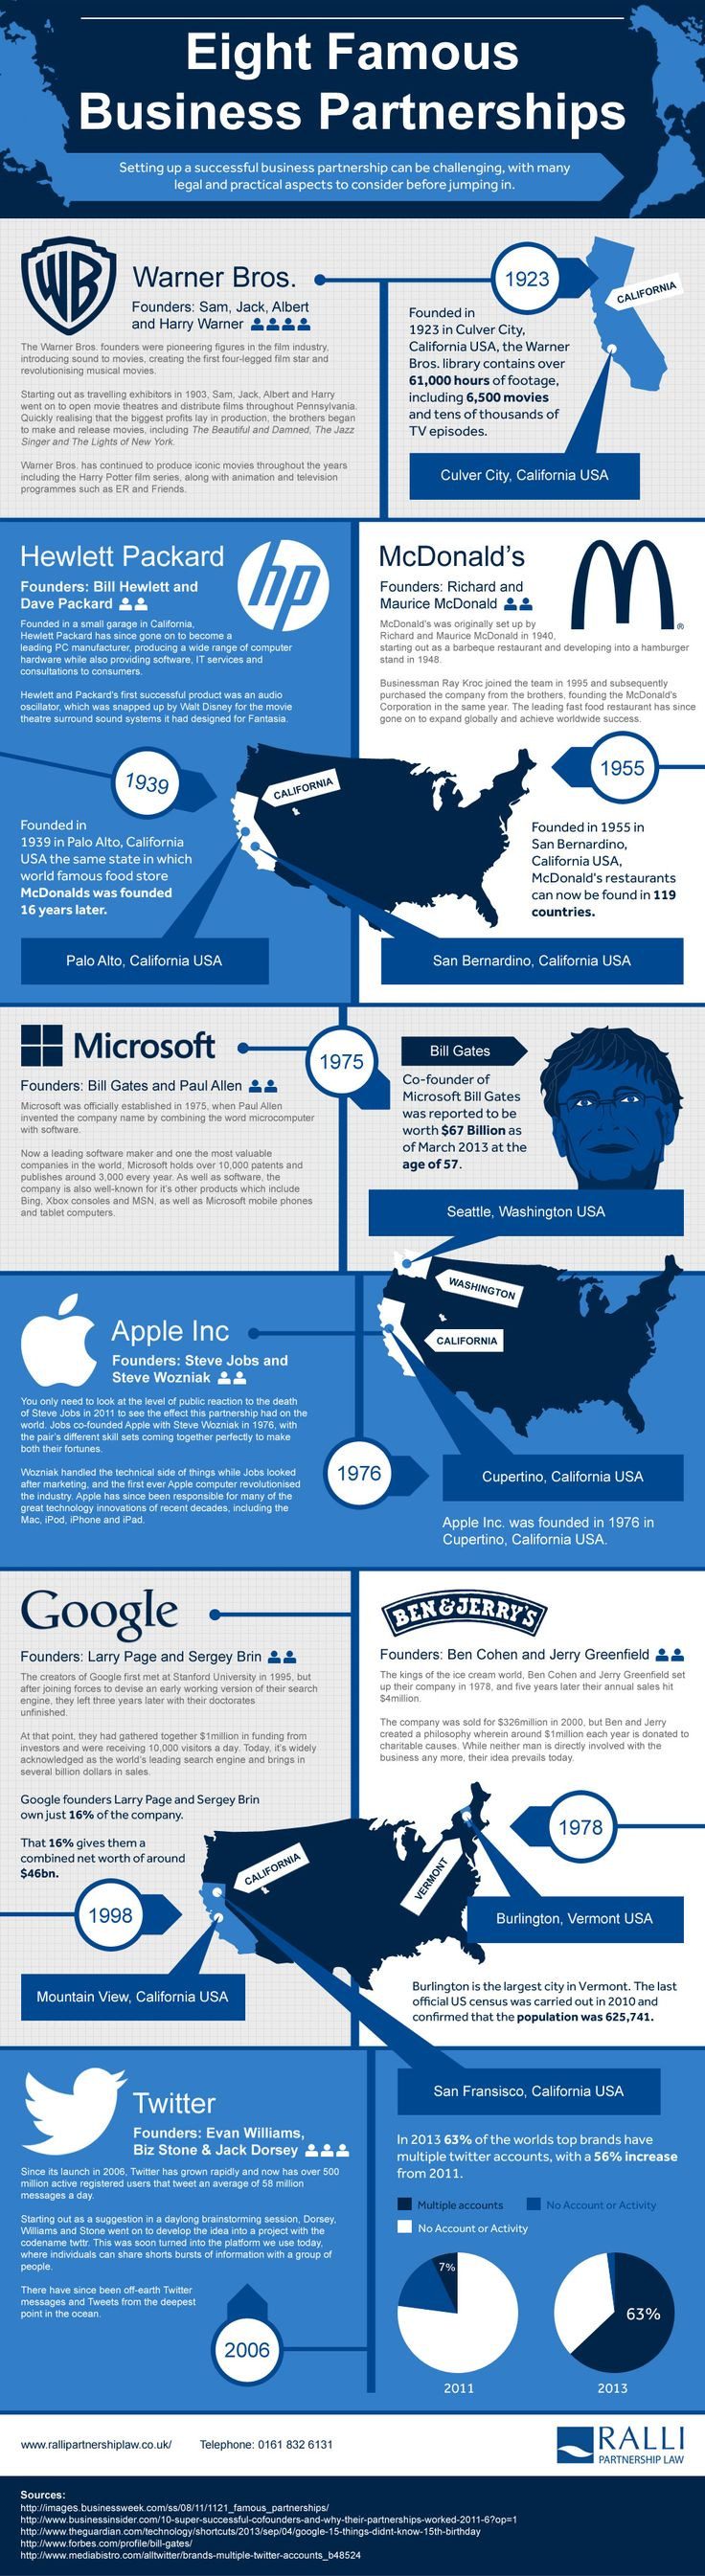 8 Famous Business Partnerships That Really Worked